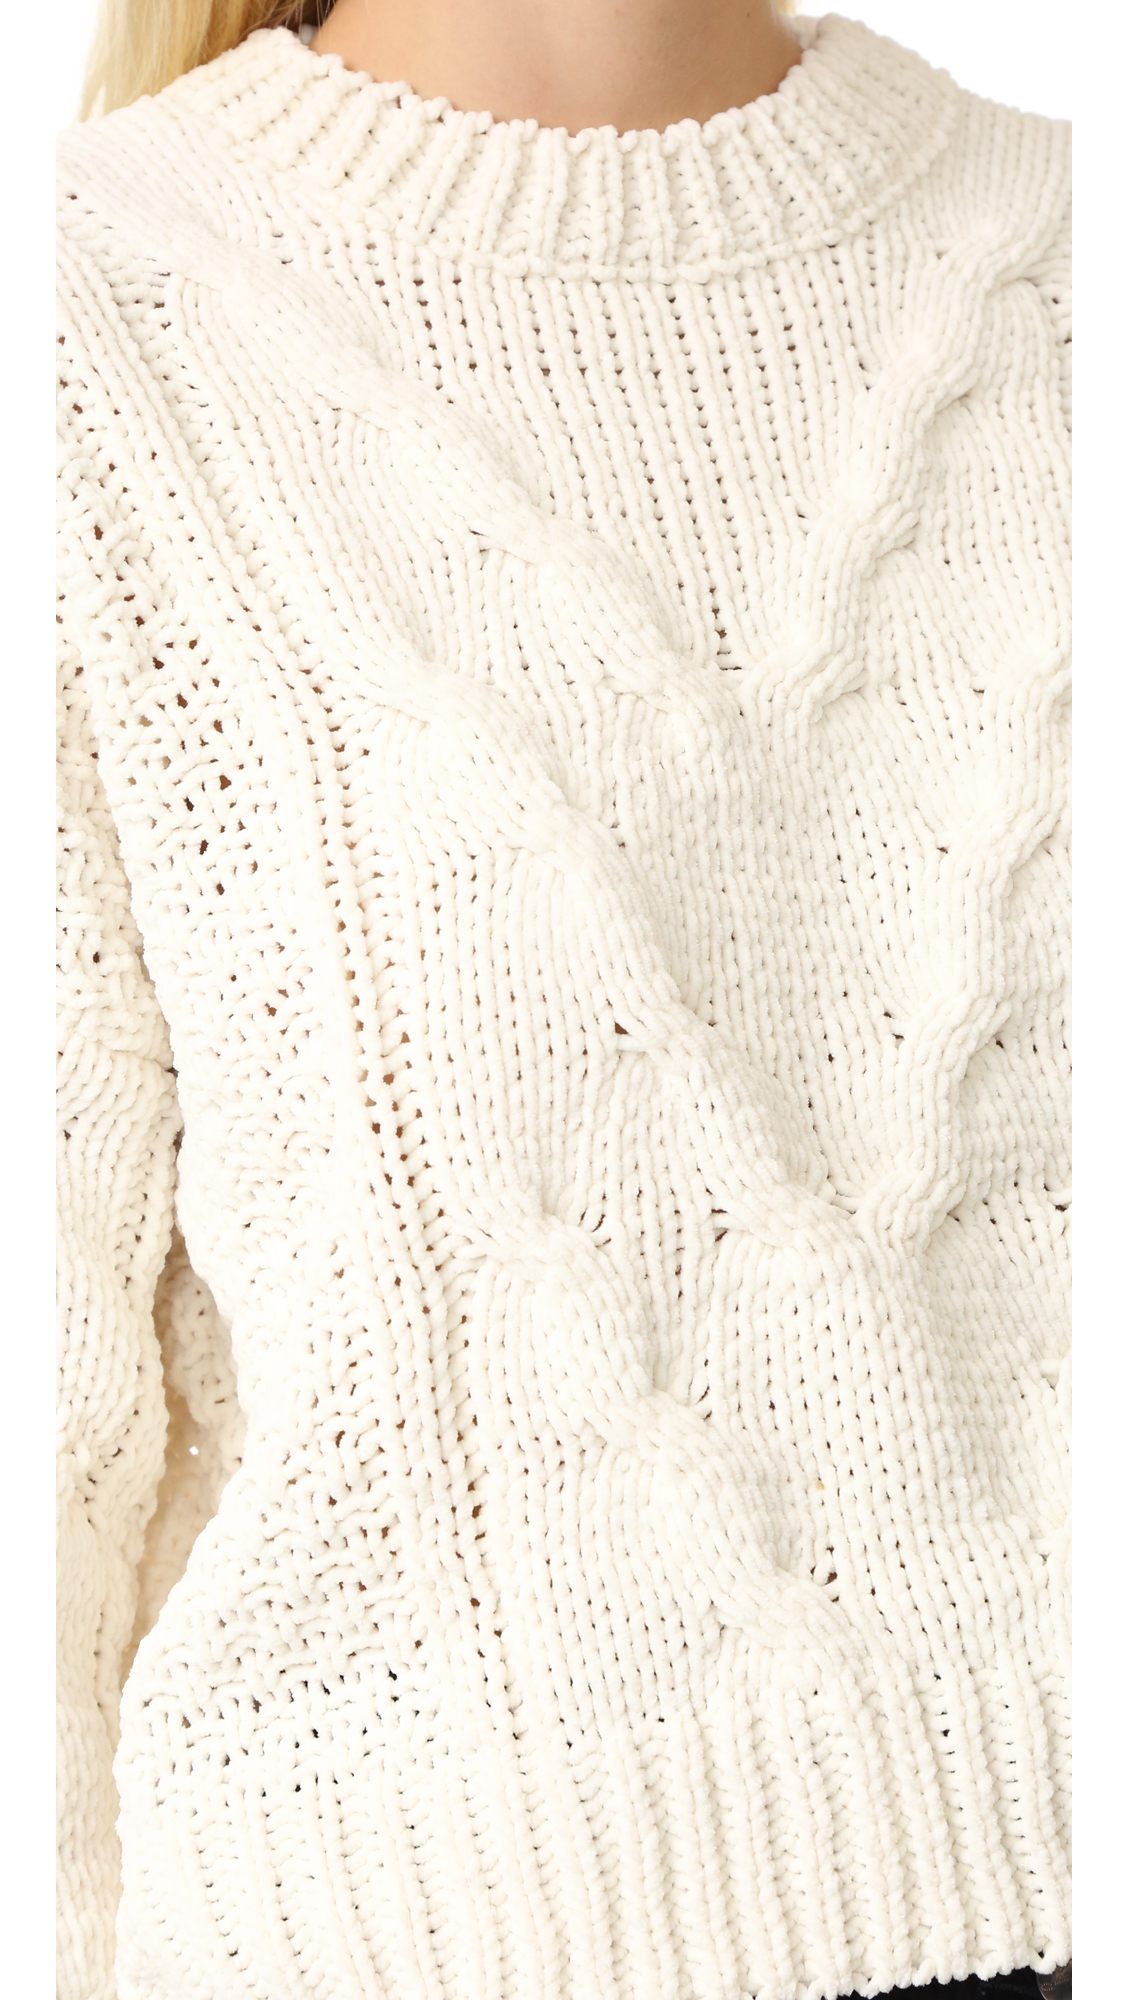 aad3922706 J.O.A. Cable Crew Sweater